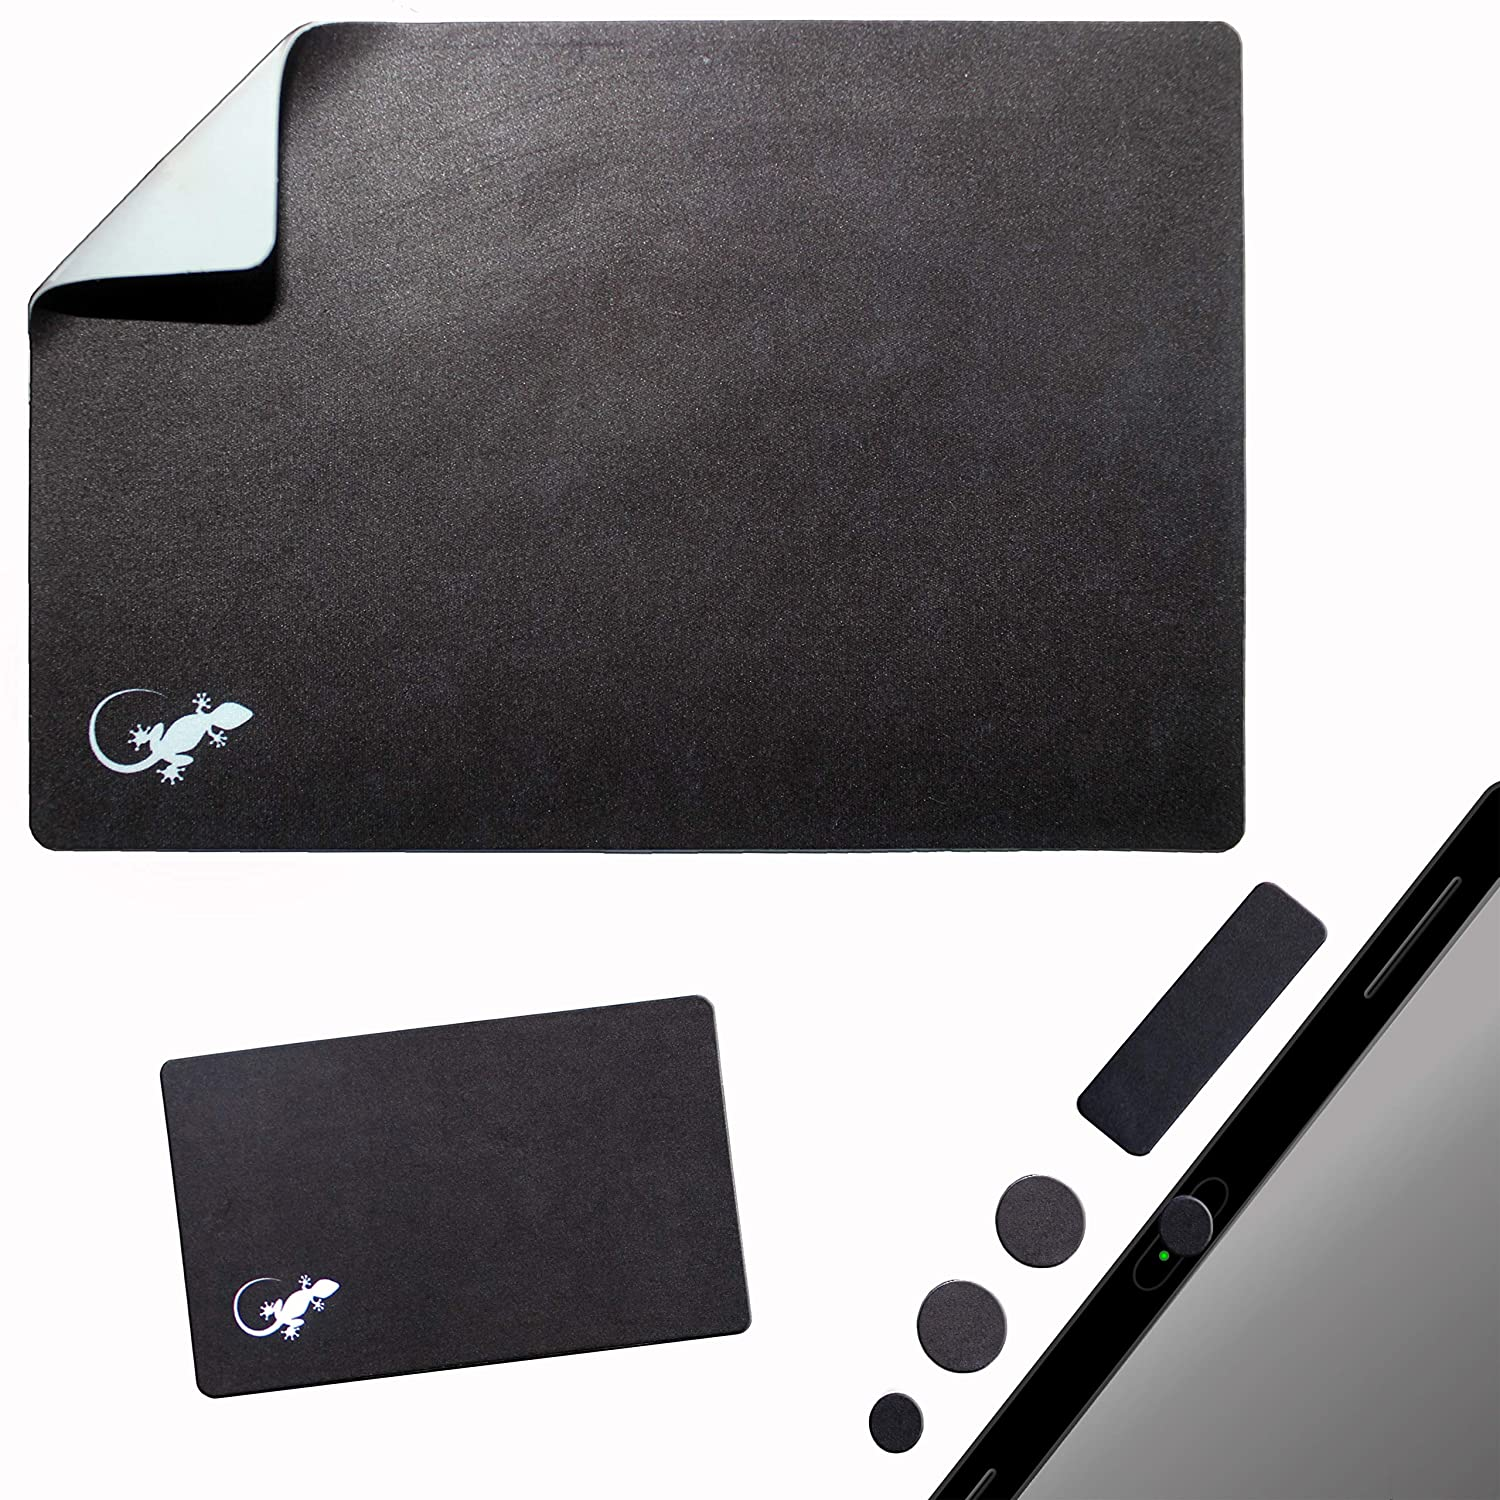 Mouse Pad Adhesive Bottom - Sticks to Any Surface - Portable - Webcam Covers and Screen Cleaner Included (Black)